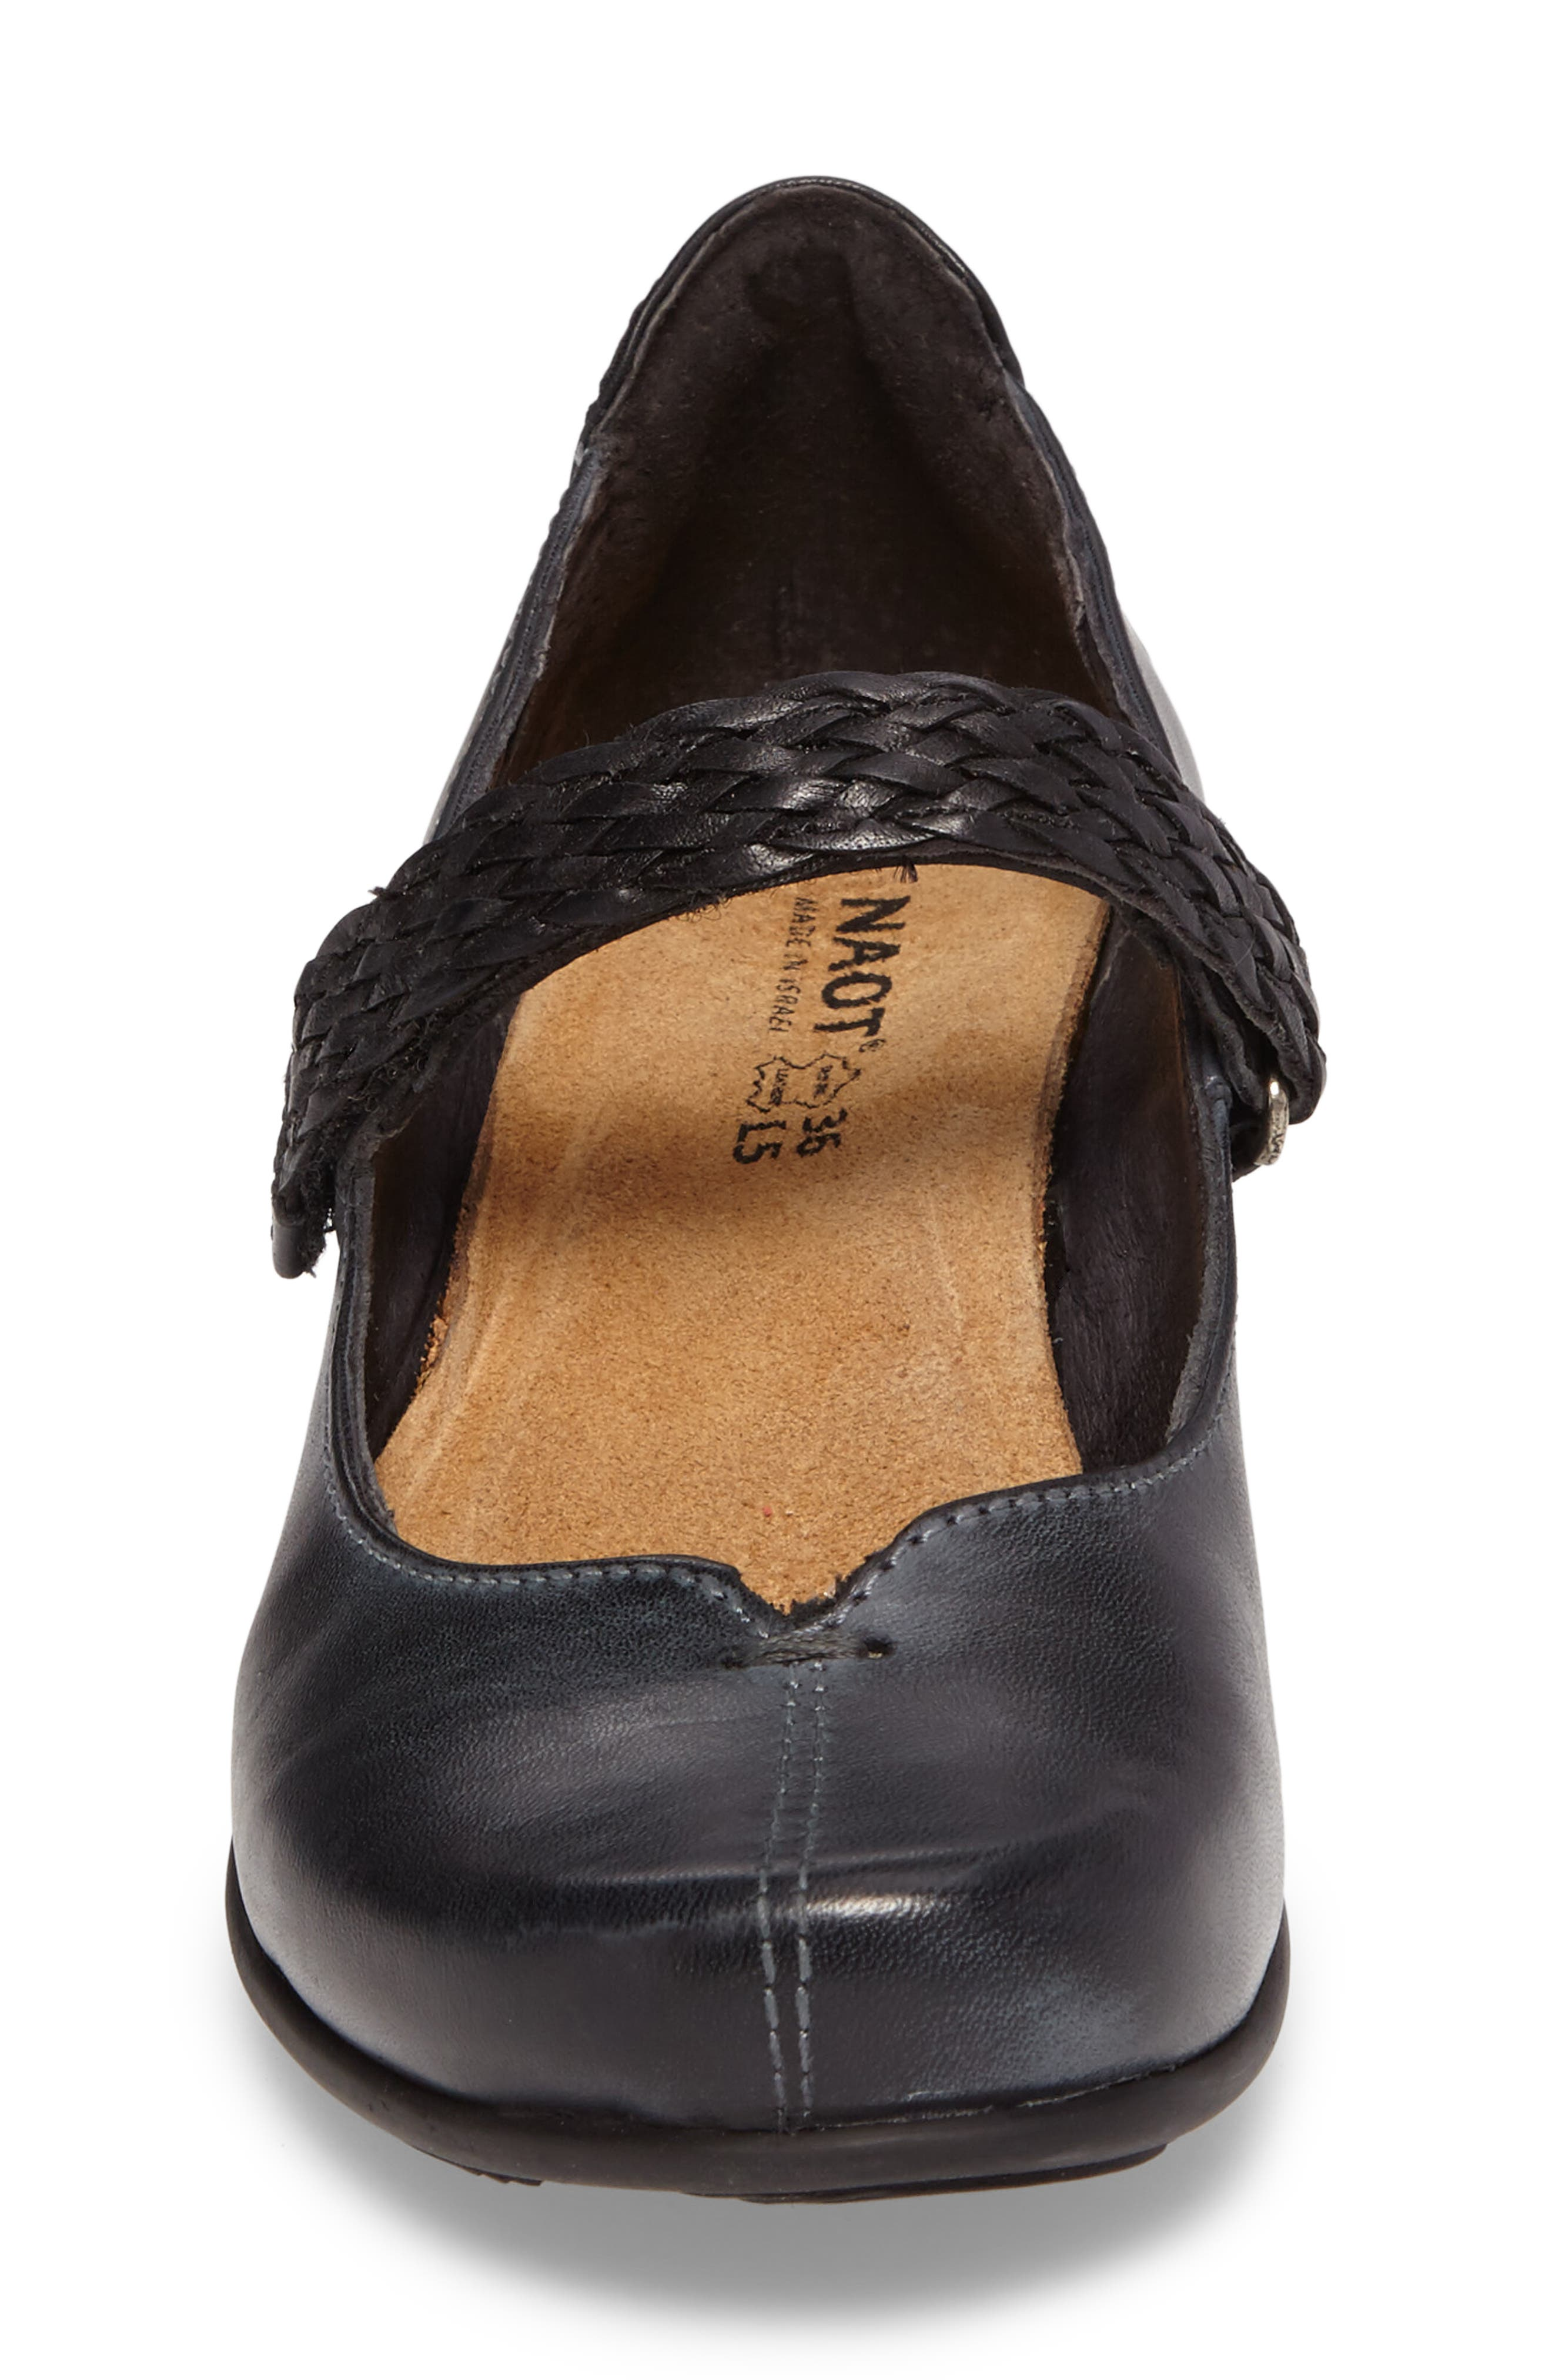 Forward Mary Jane Pump,                             Alternate thumbnail 4, color,                             VINTAGE ASH LEATHER